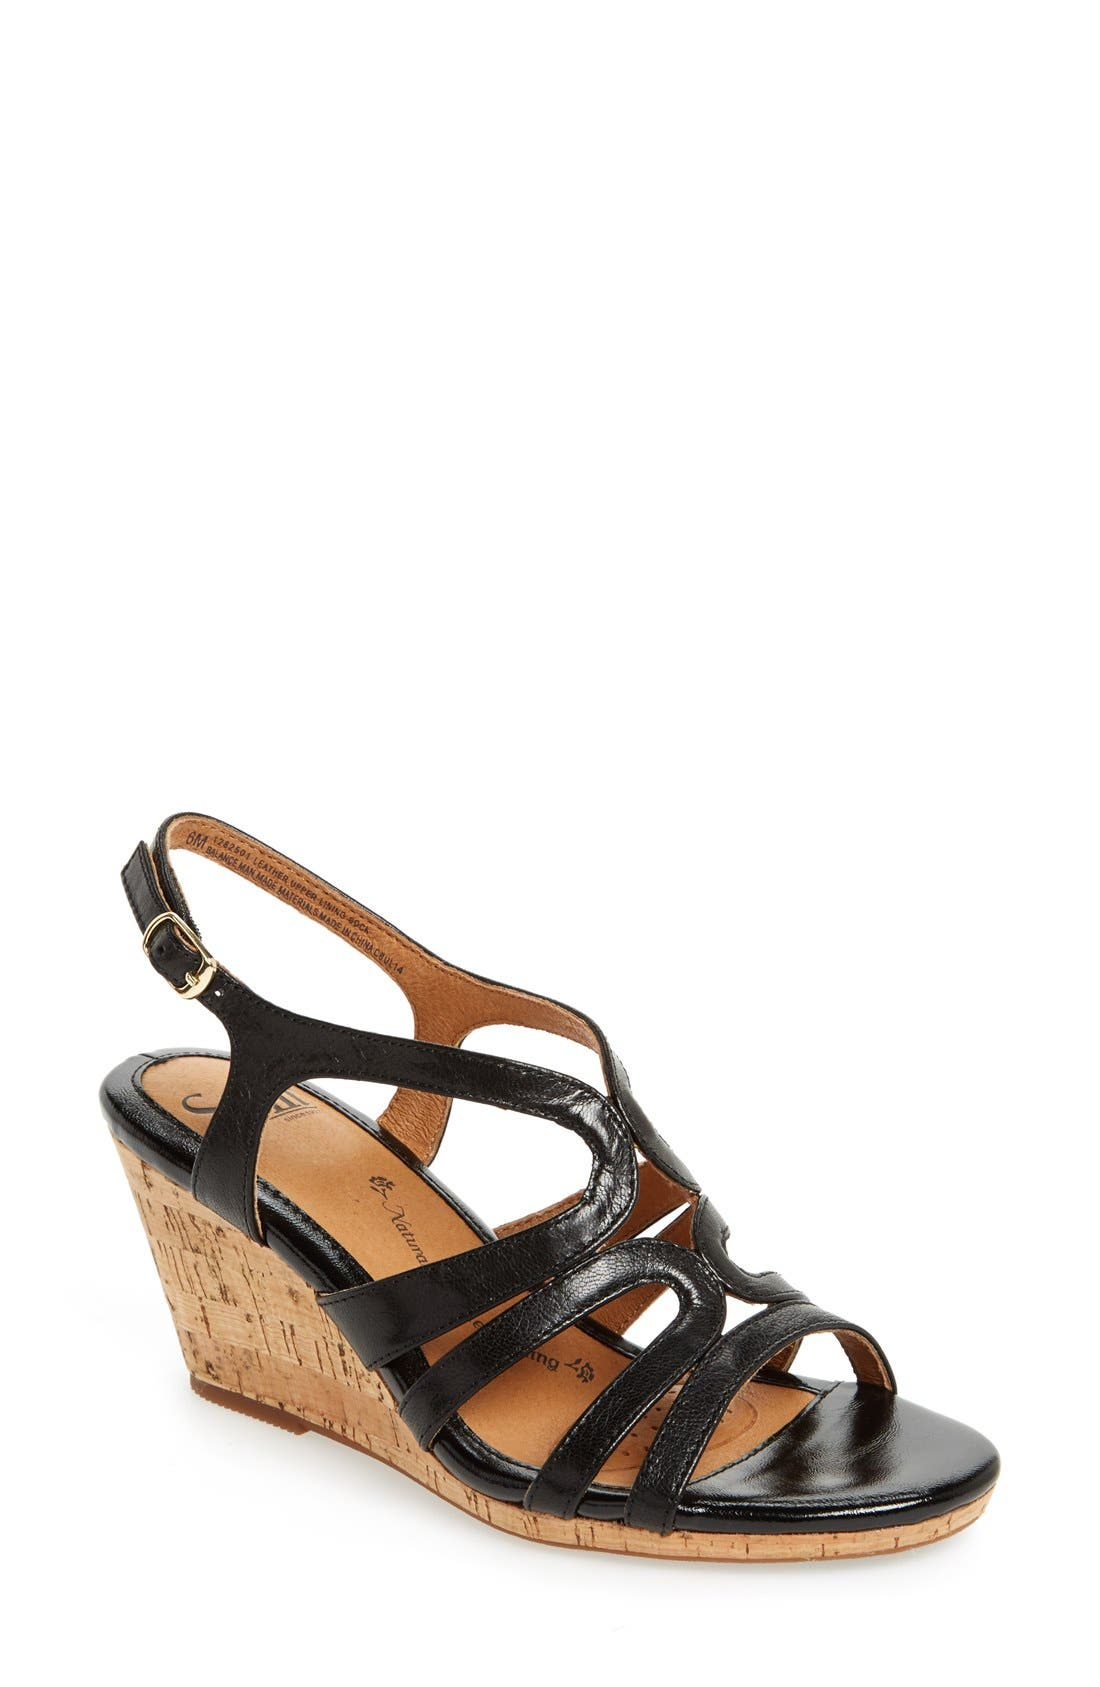 Alternate Image 1 Selected - Söfft 'Corinth' Leather Wedge Sandal (Women)